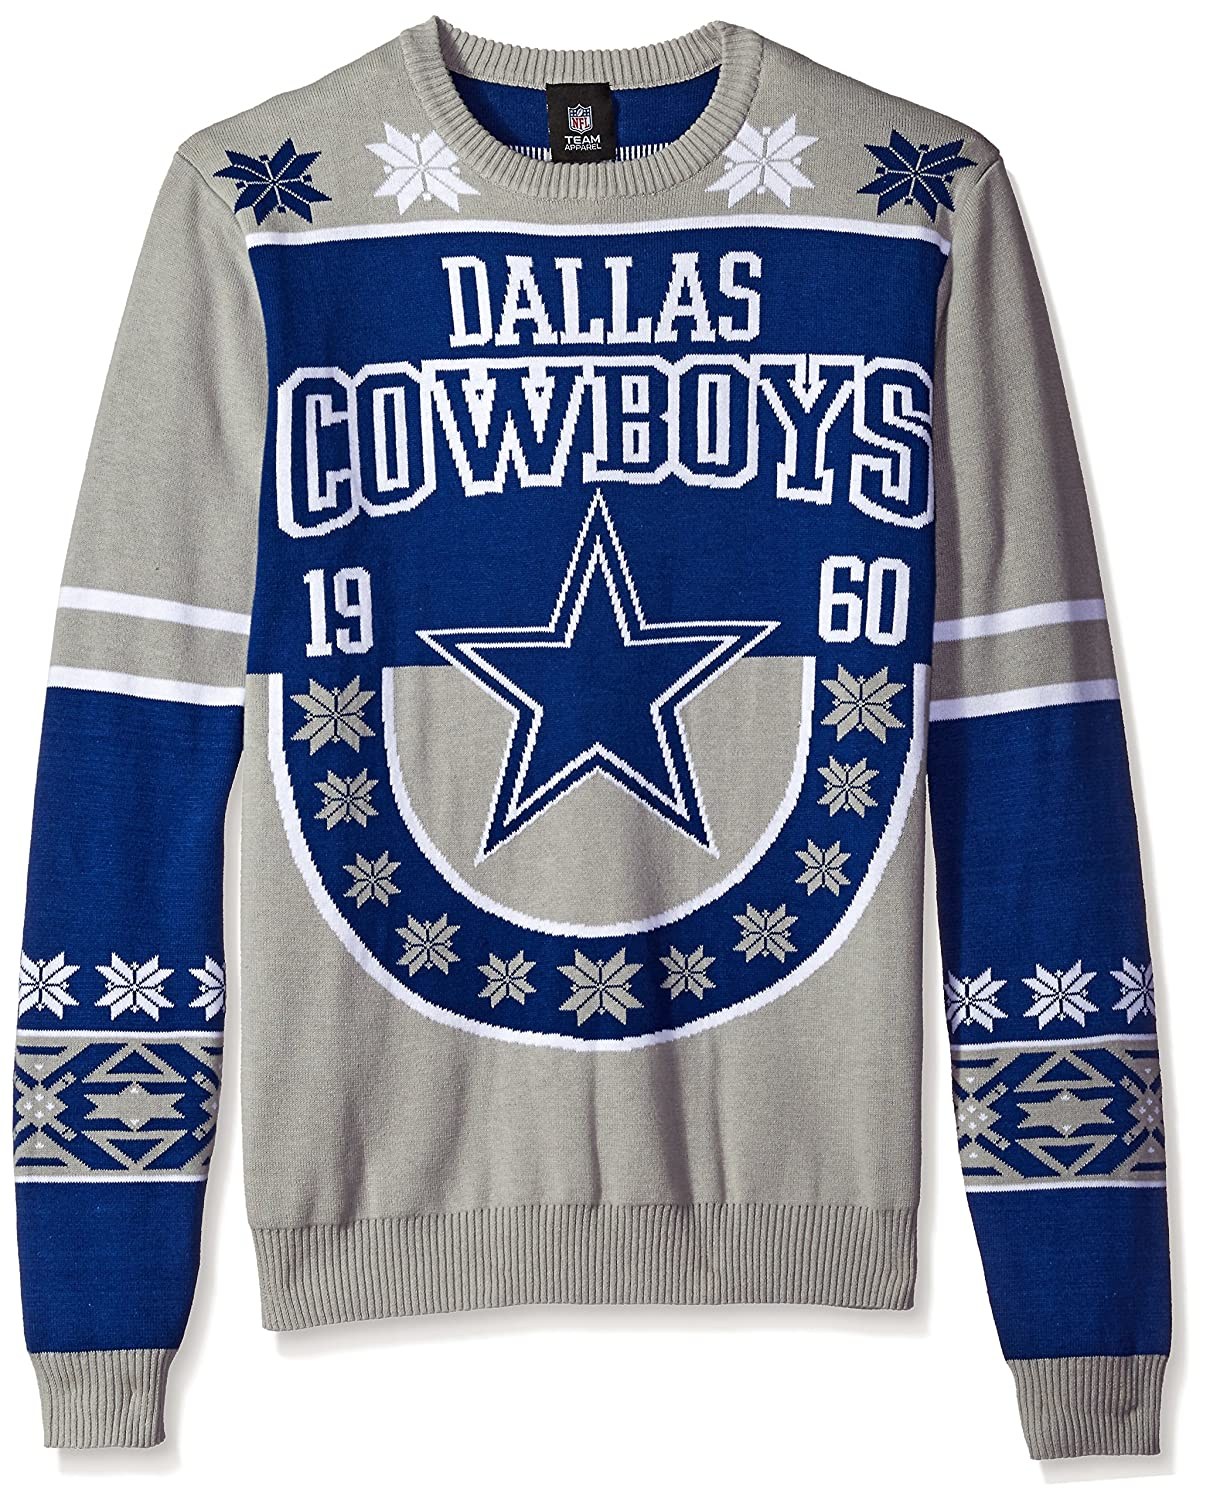 Dallas Cowboys Cotton Retro Sweater